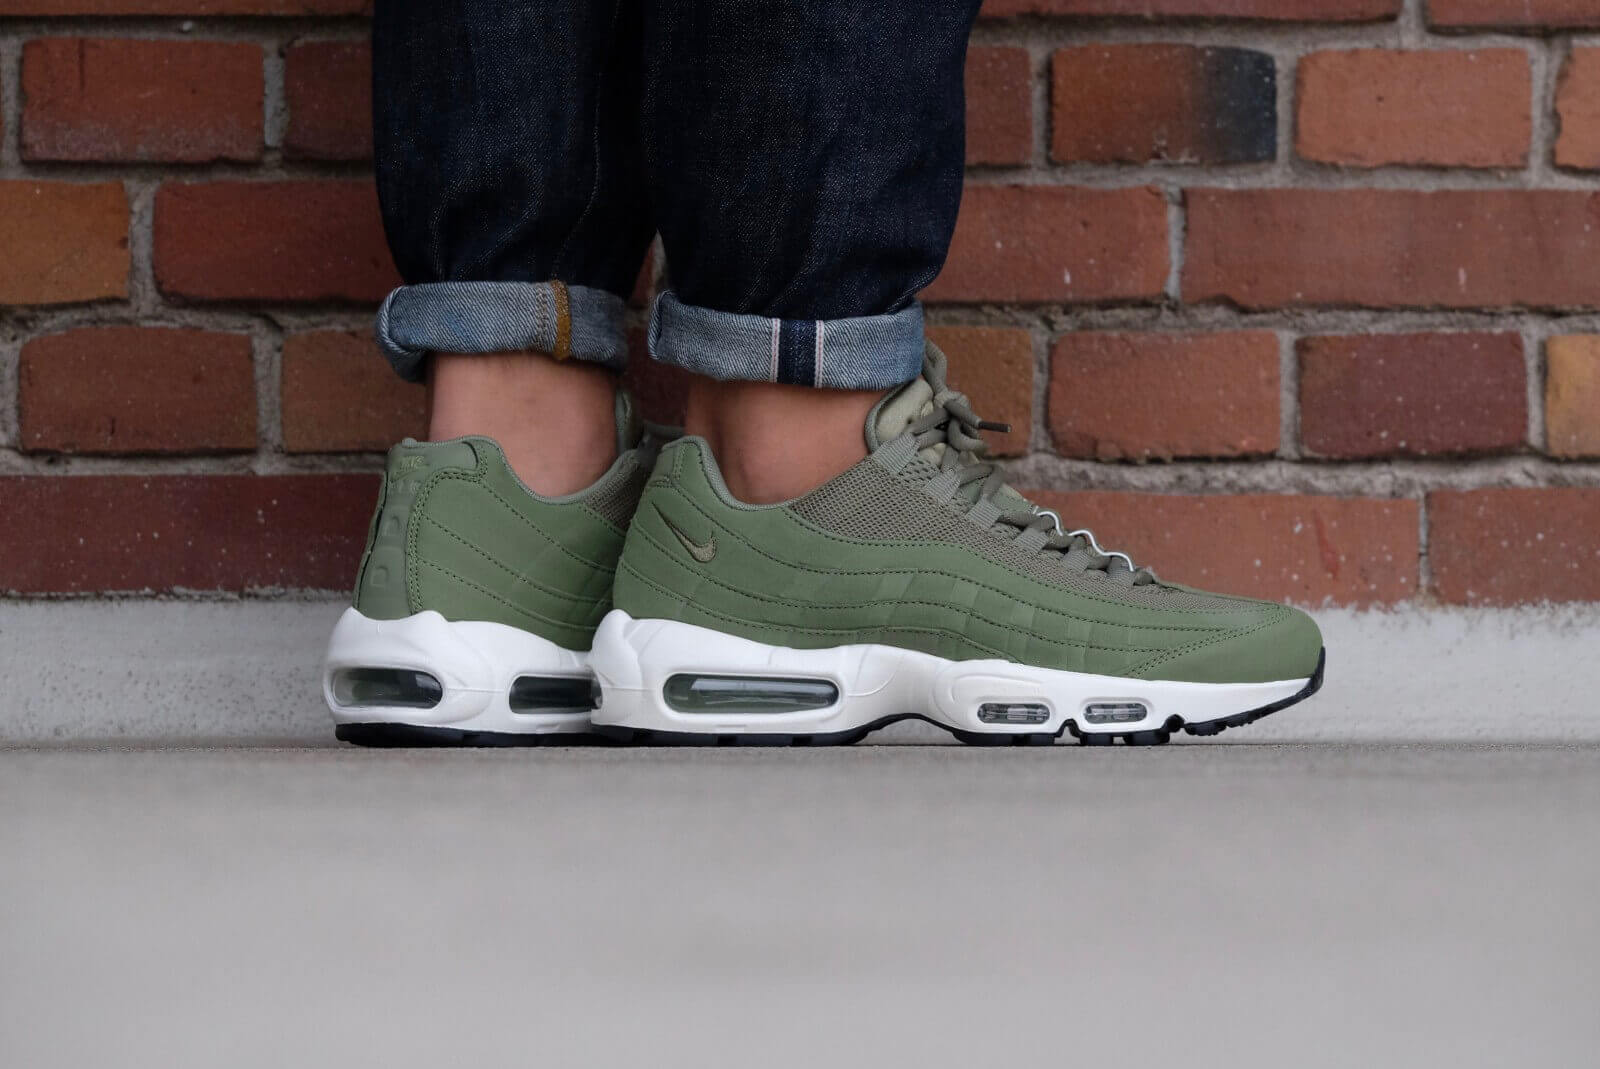 cheaper 9670d a235b usa nike wmns air max 95 palm green palm green sail black 307960 d2790 f7683